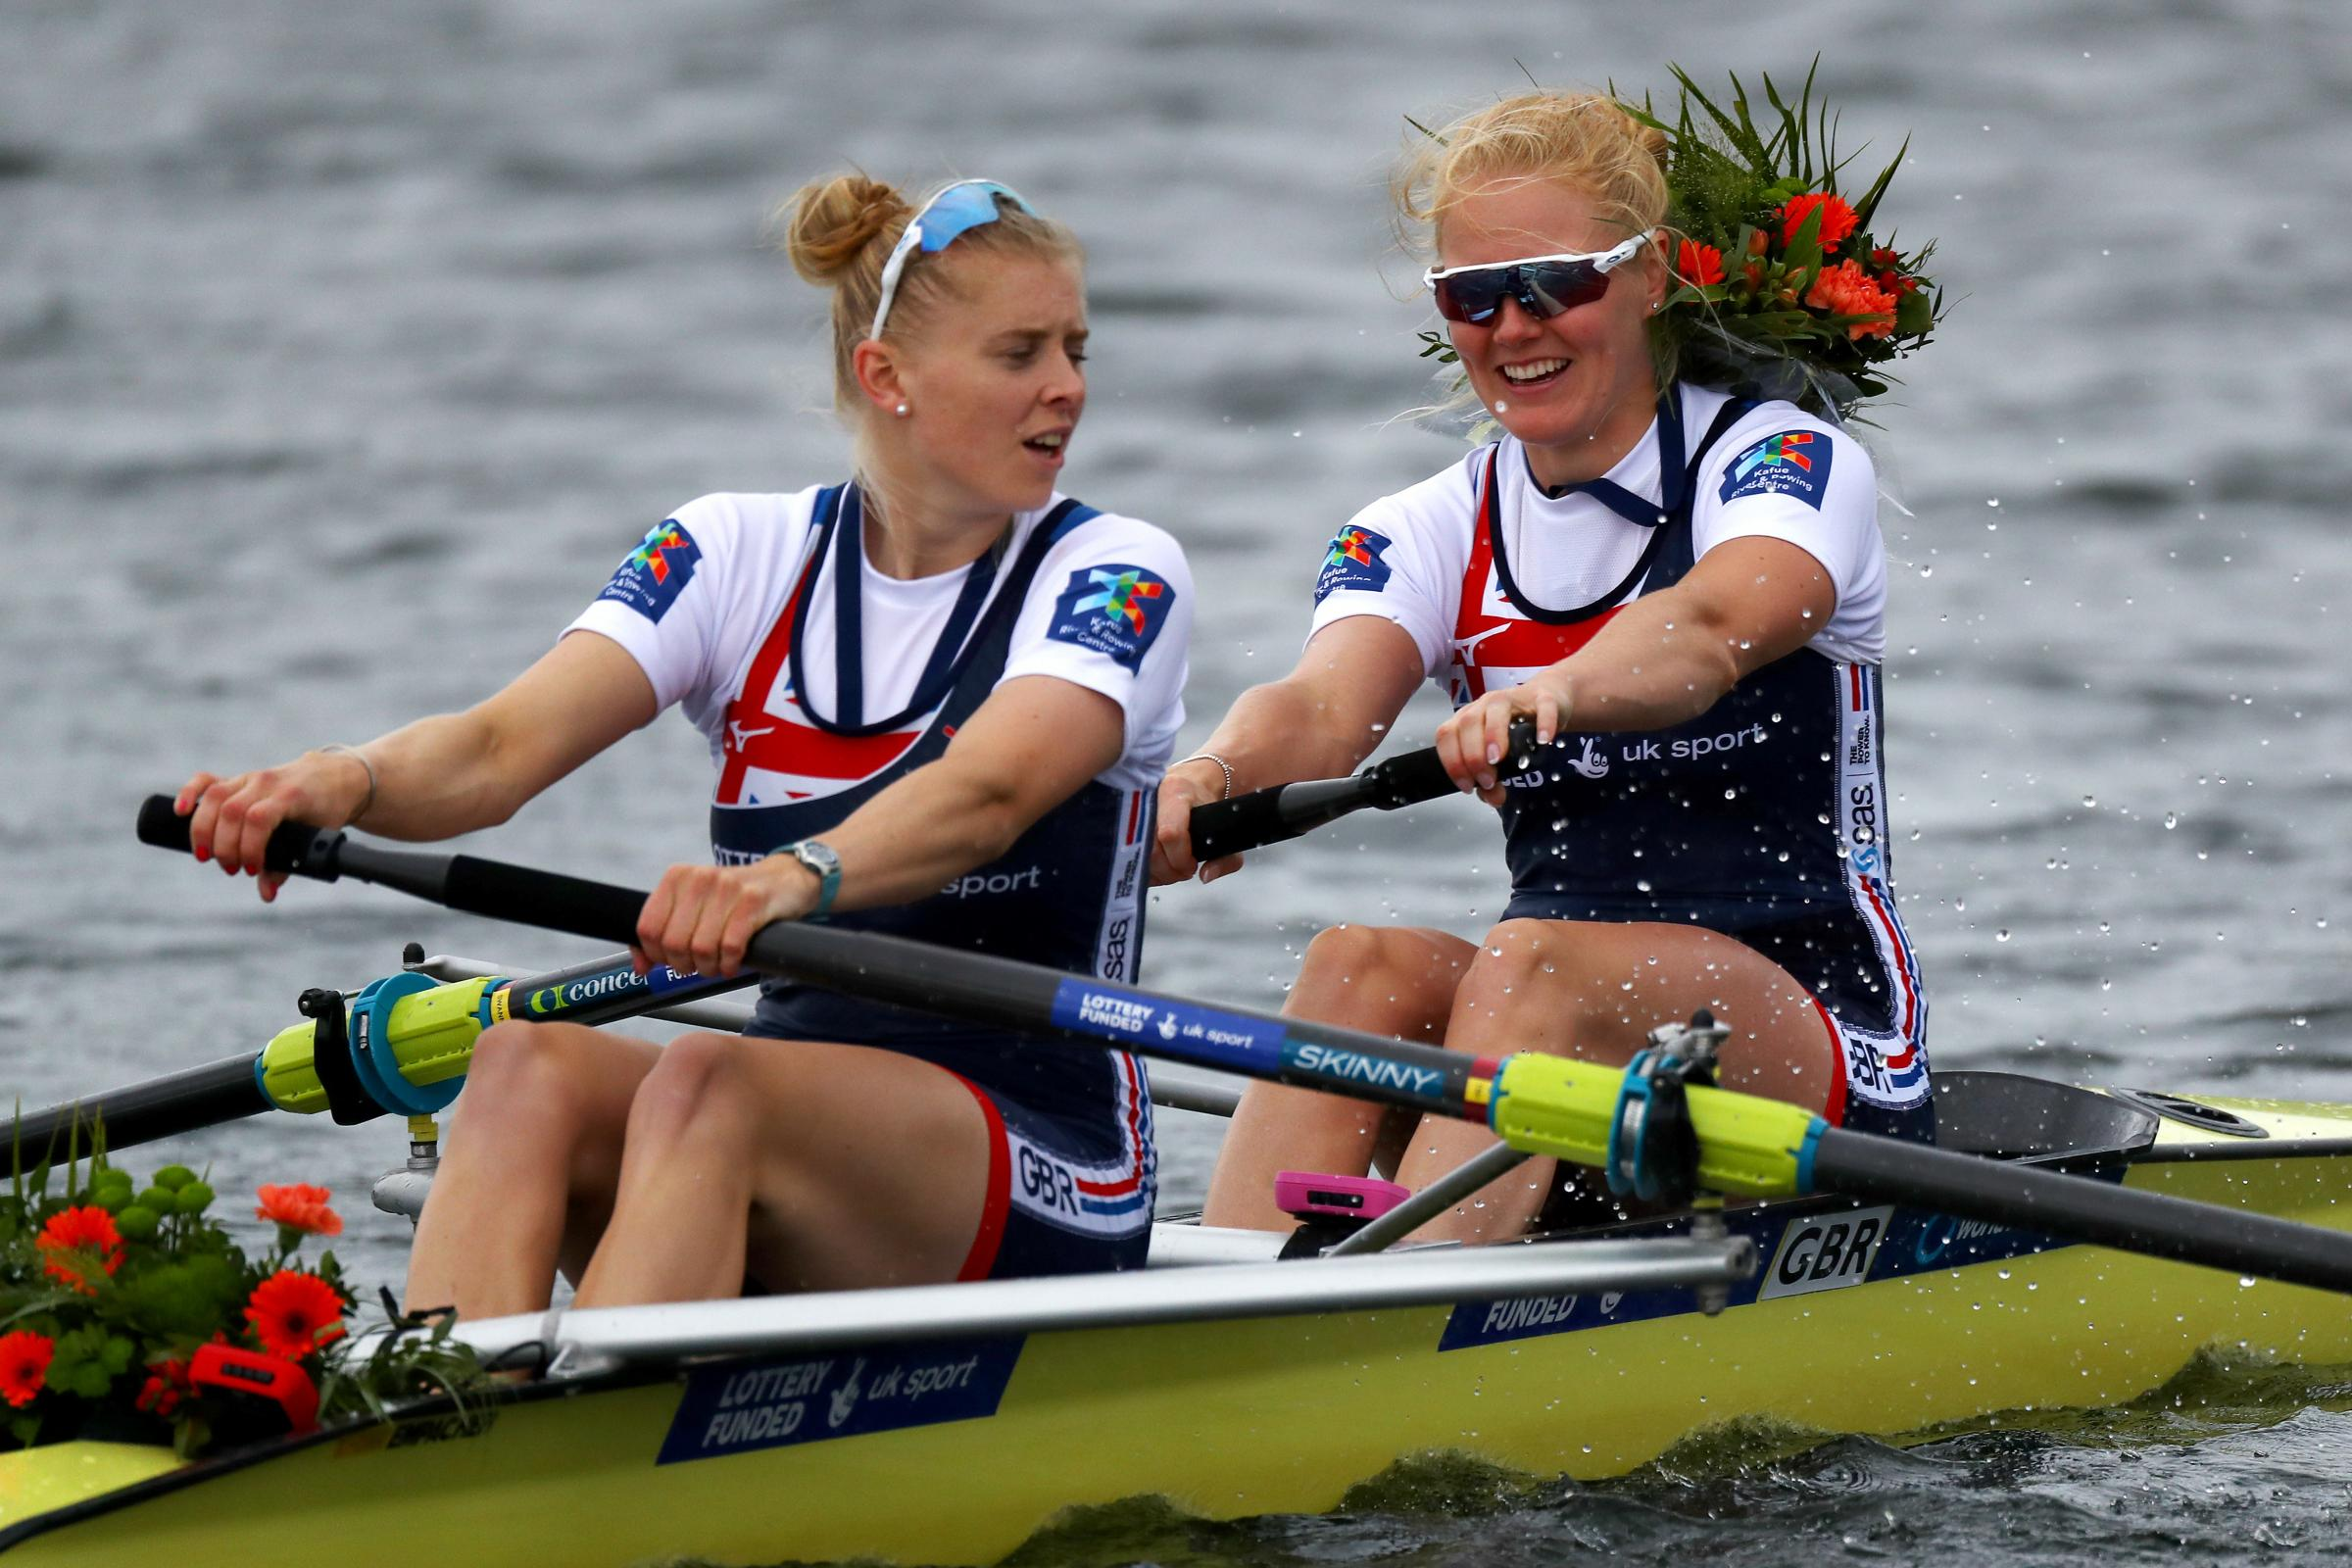 Olympic rower joins fight against coronavirus as junior doctor at Scottish hospital